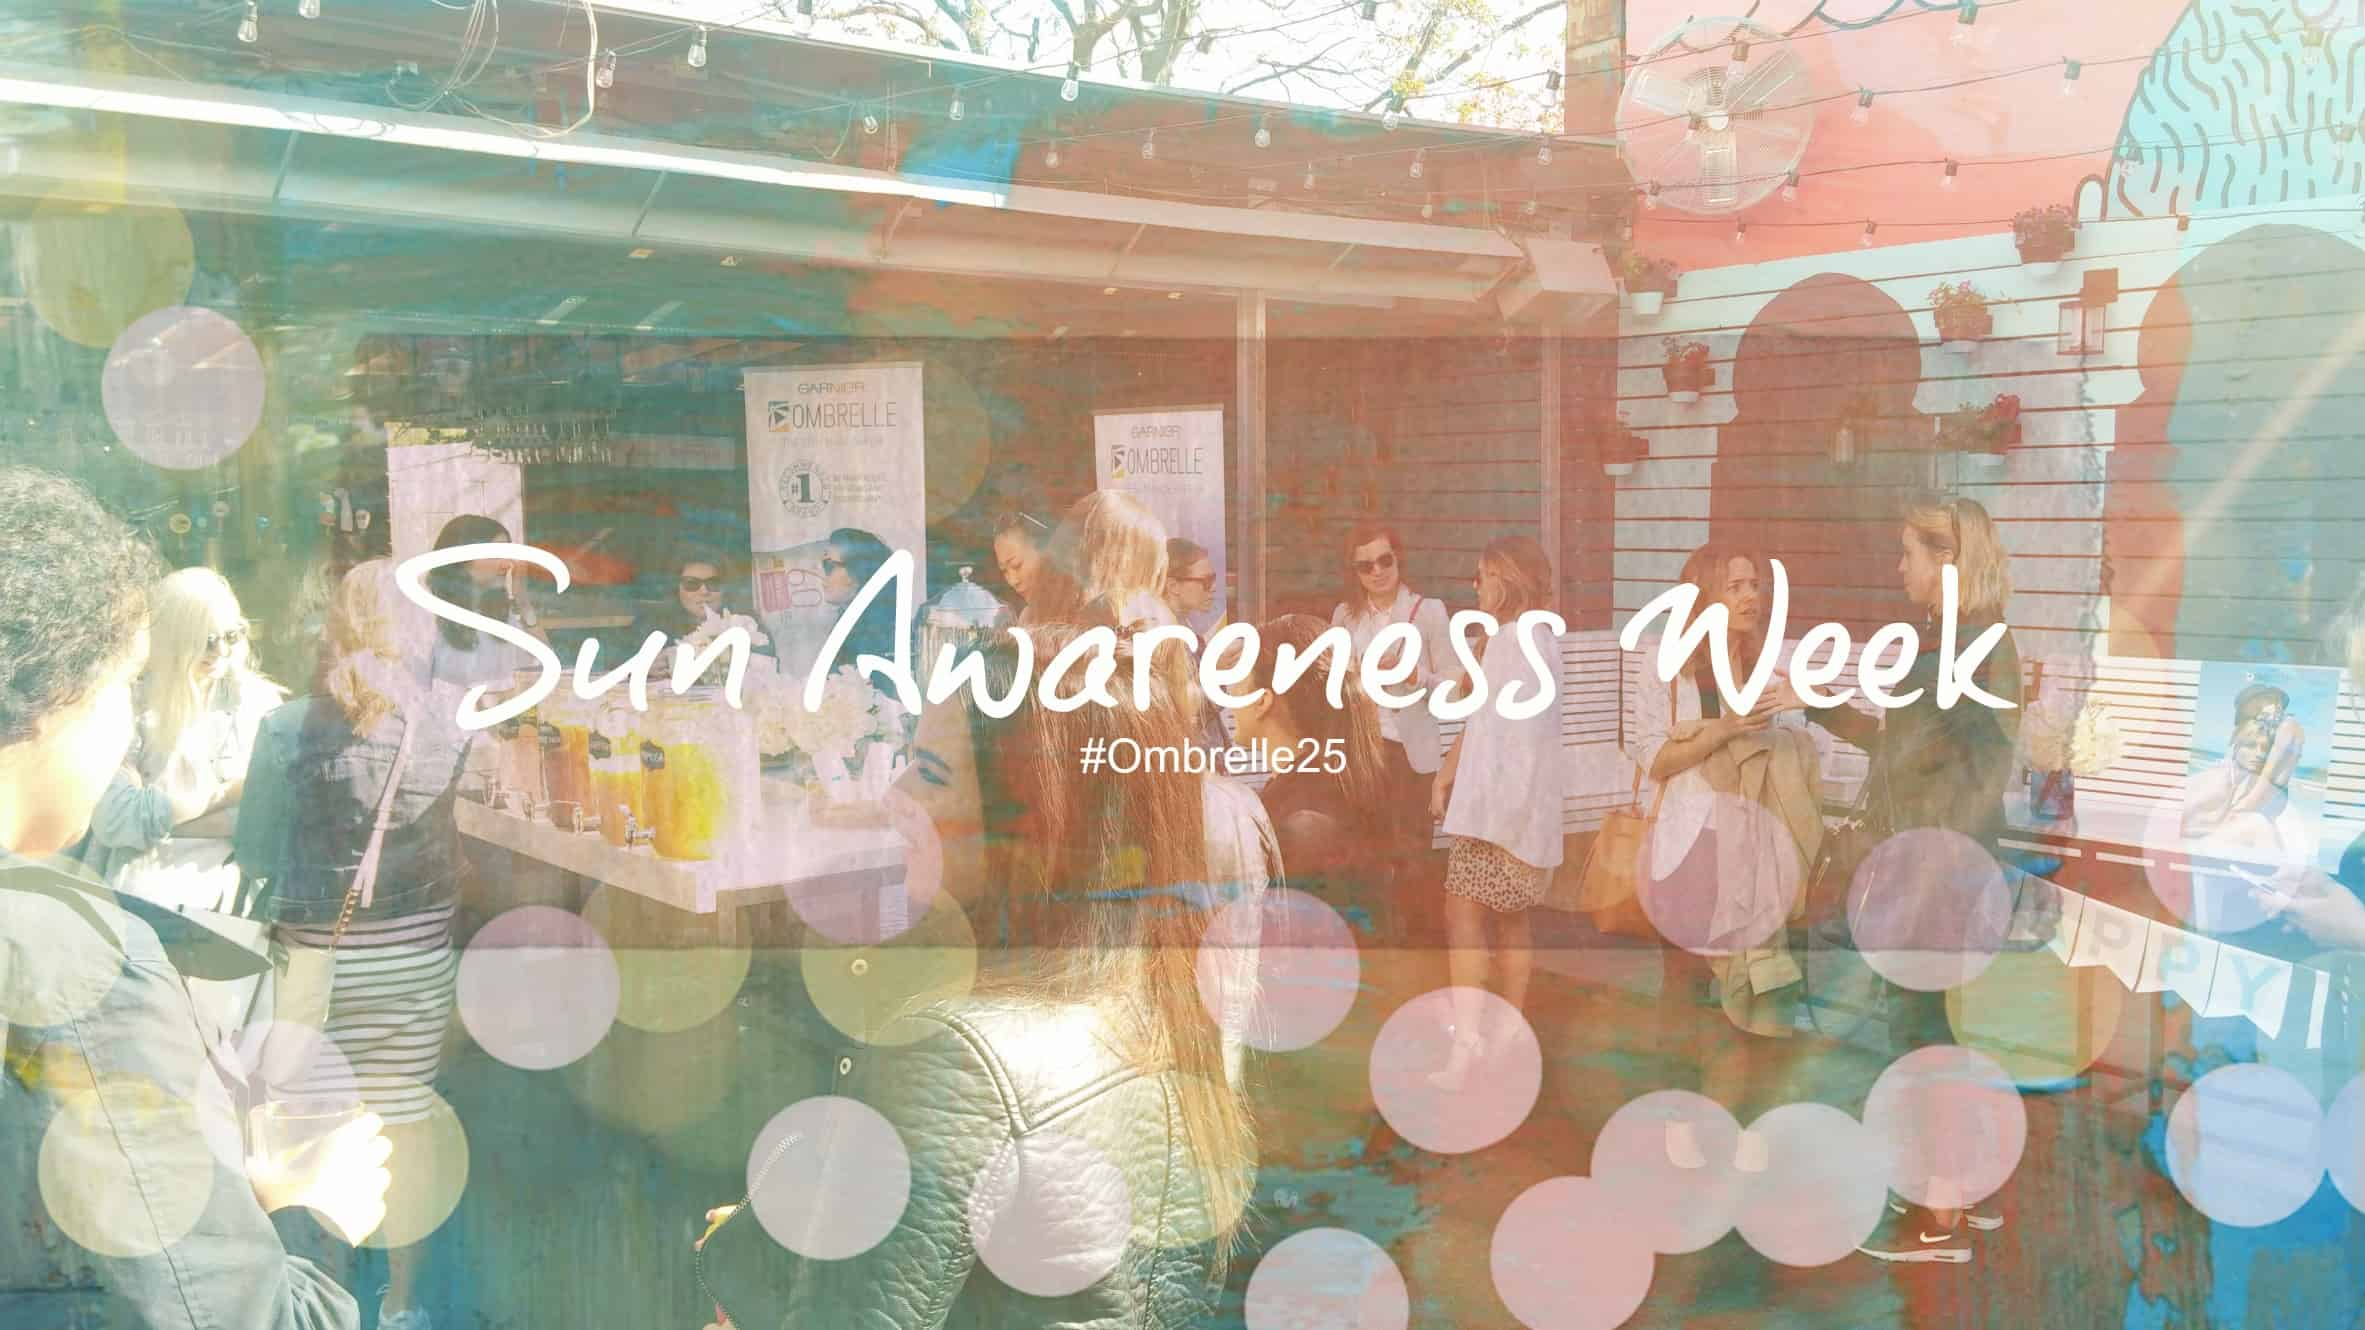 Sun Awareness Week with Ombrelle #Ombrelle25